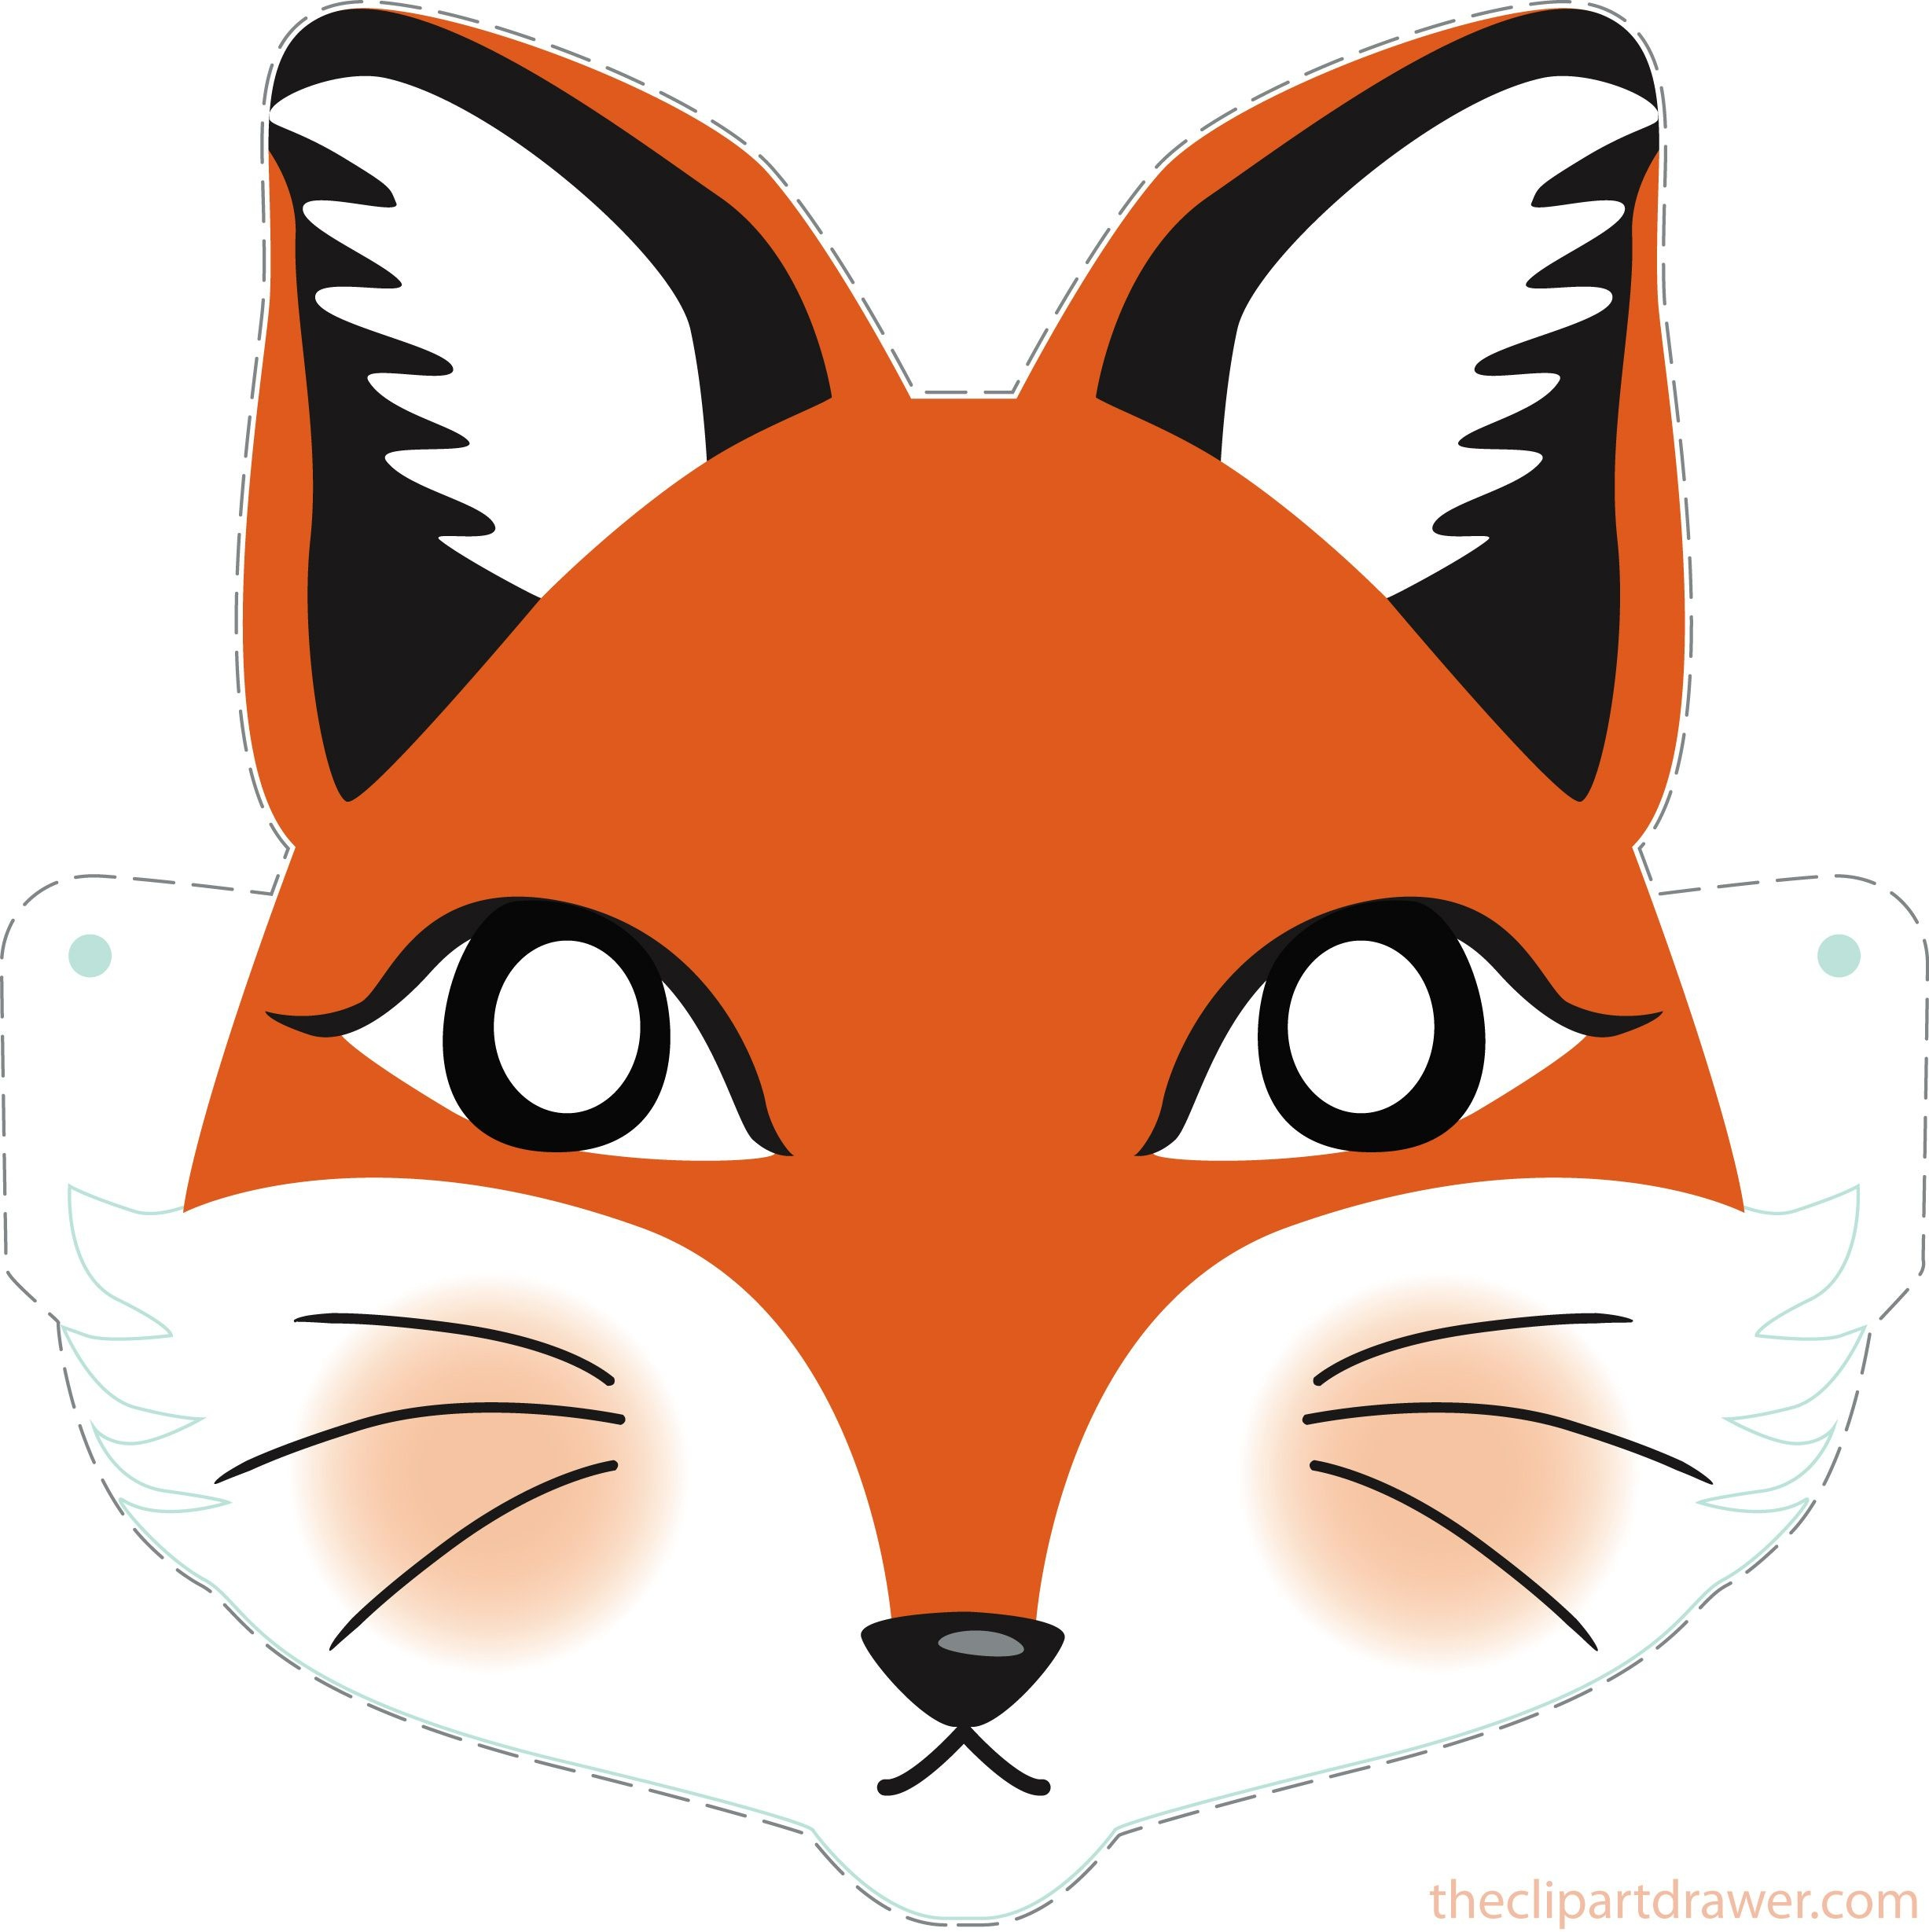 Diy Fox Printable Mask For Kids - Clipart Drawer | Diy | Printable - Free Printable Fox Mask Template